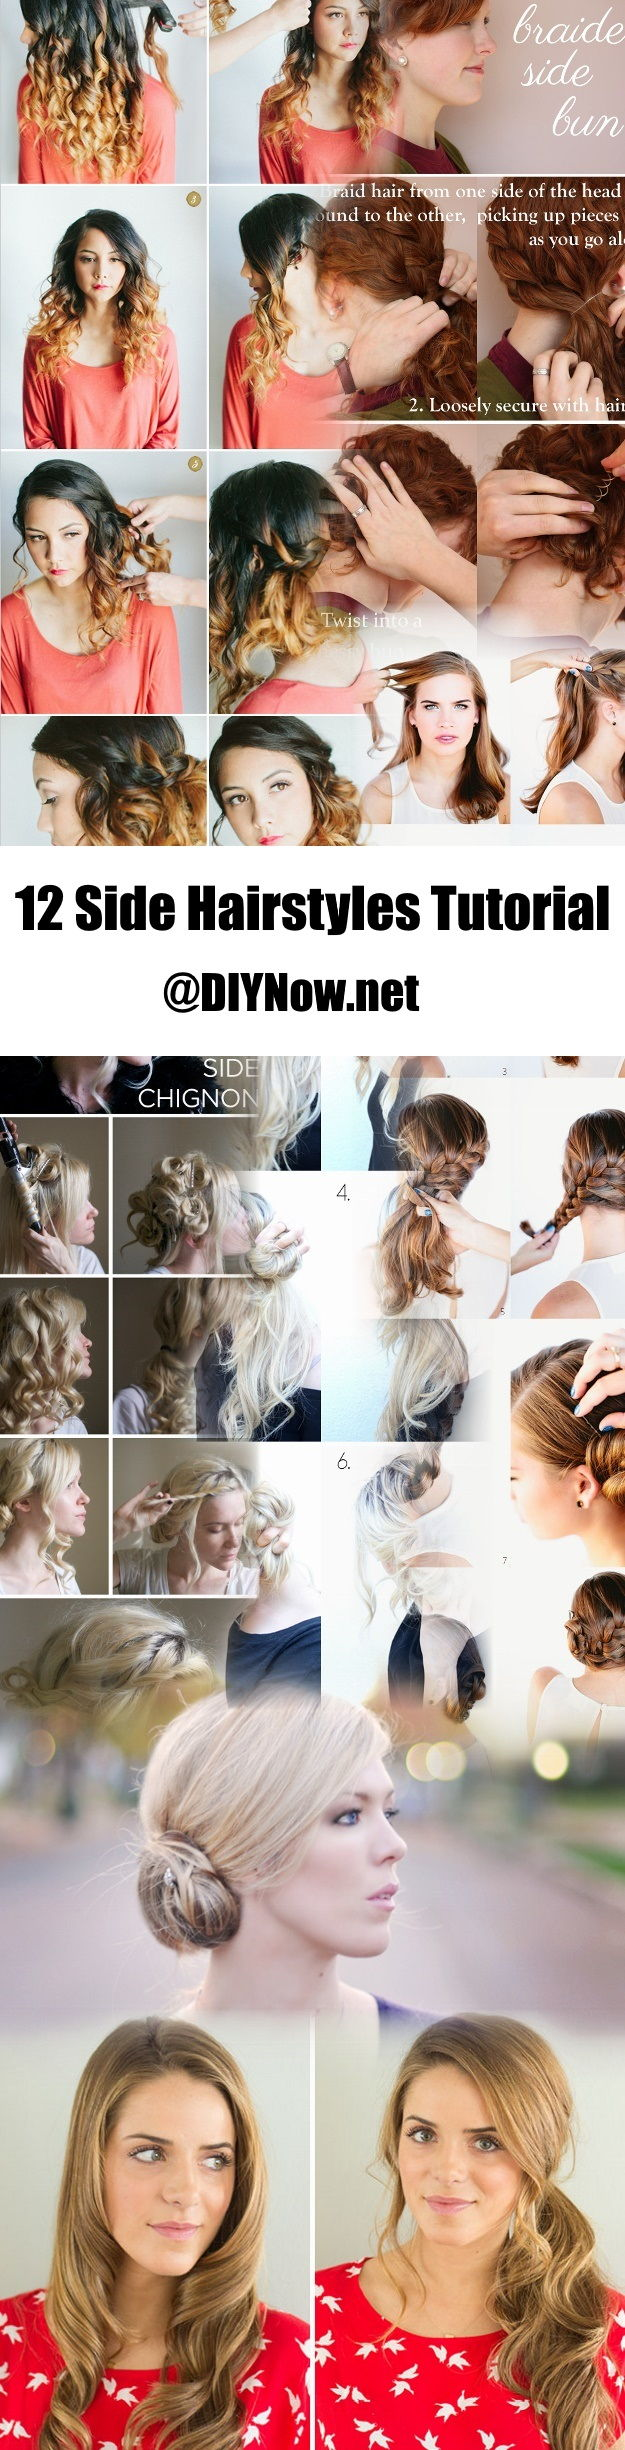 12 Side Hairstyles Tutorial